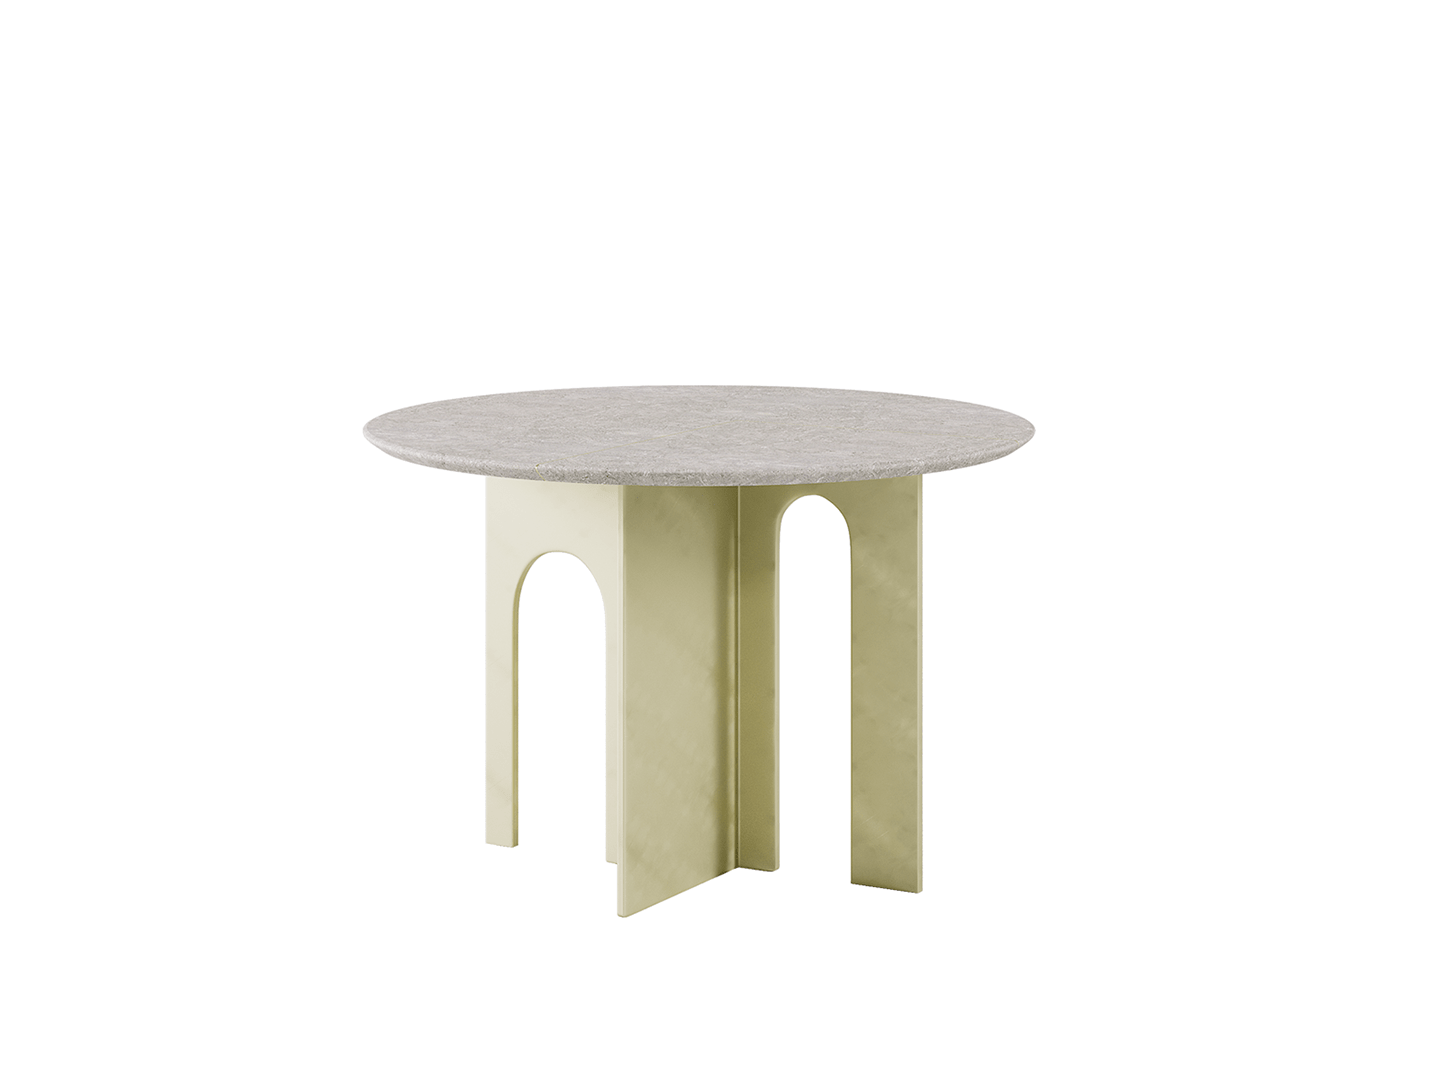 Arche dining table